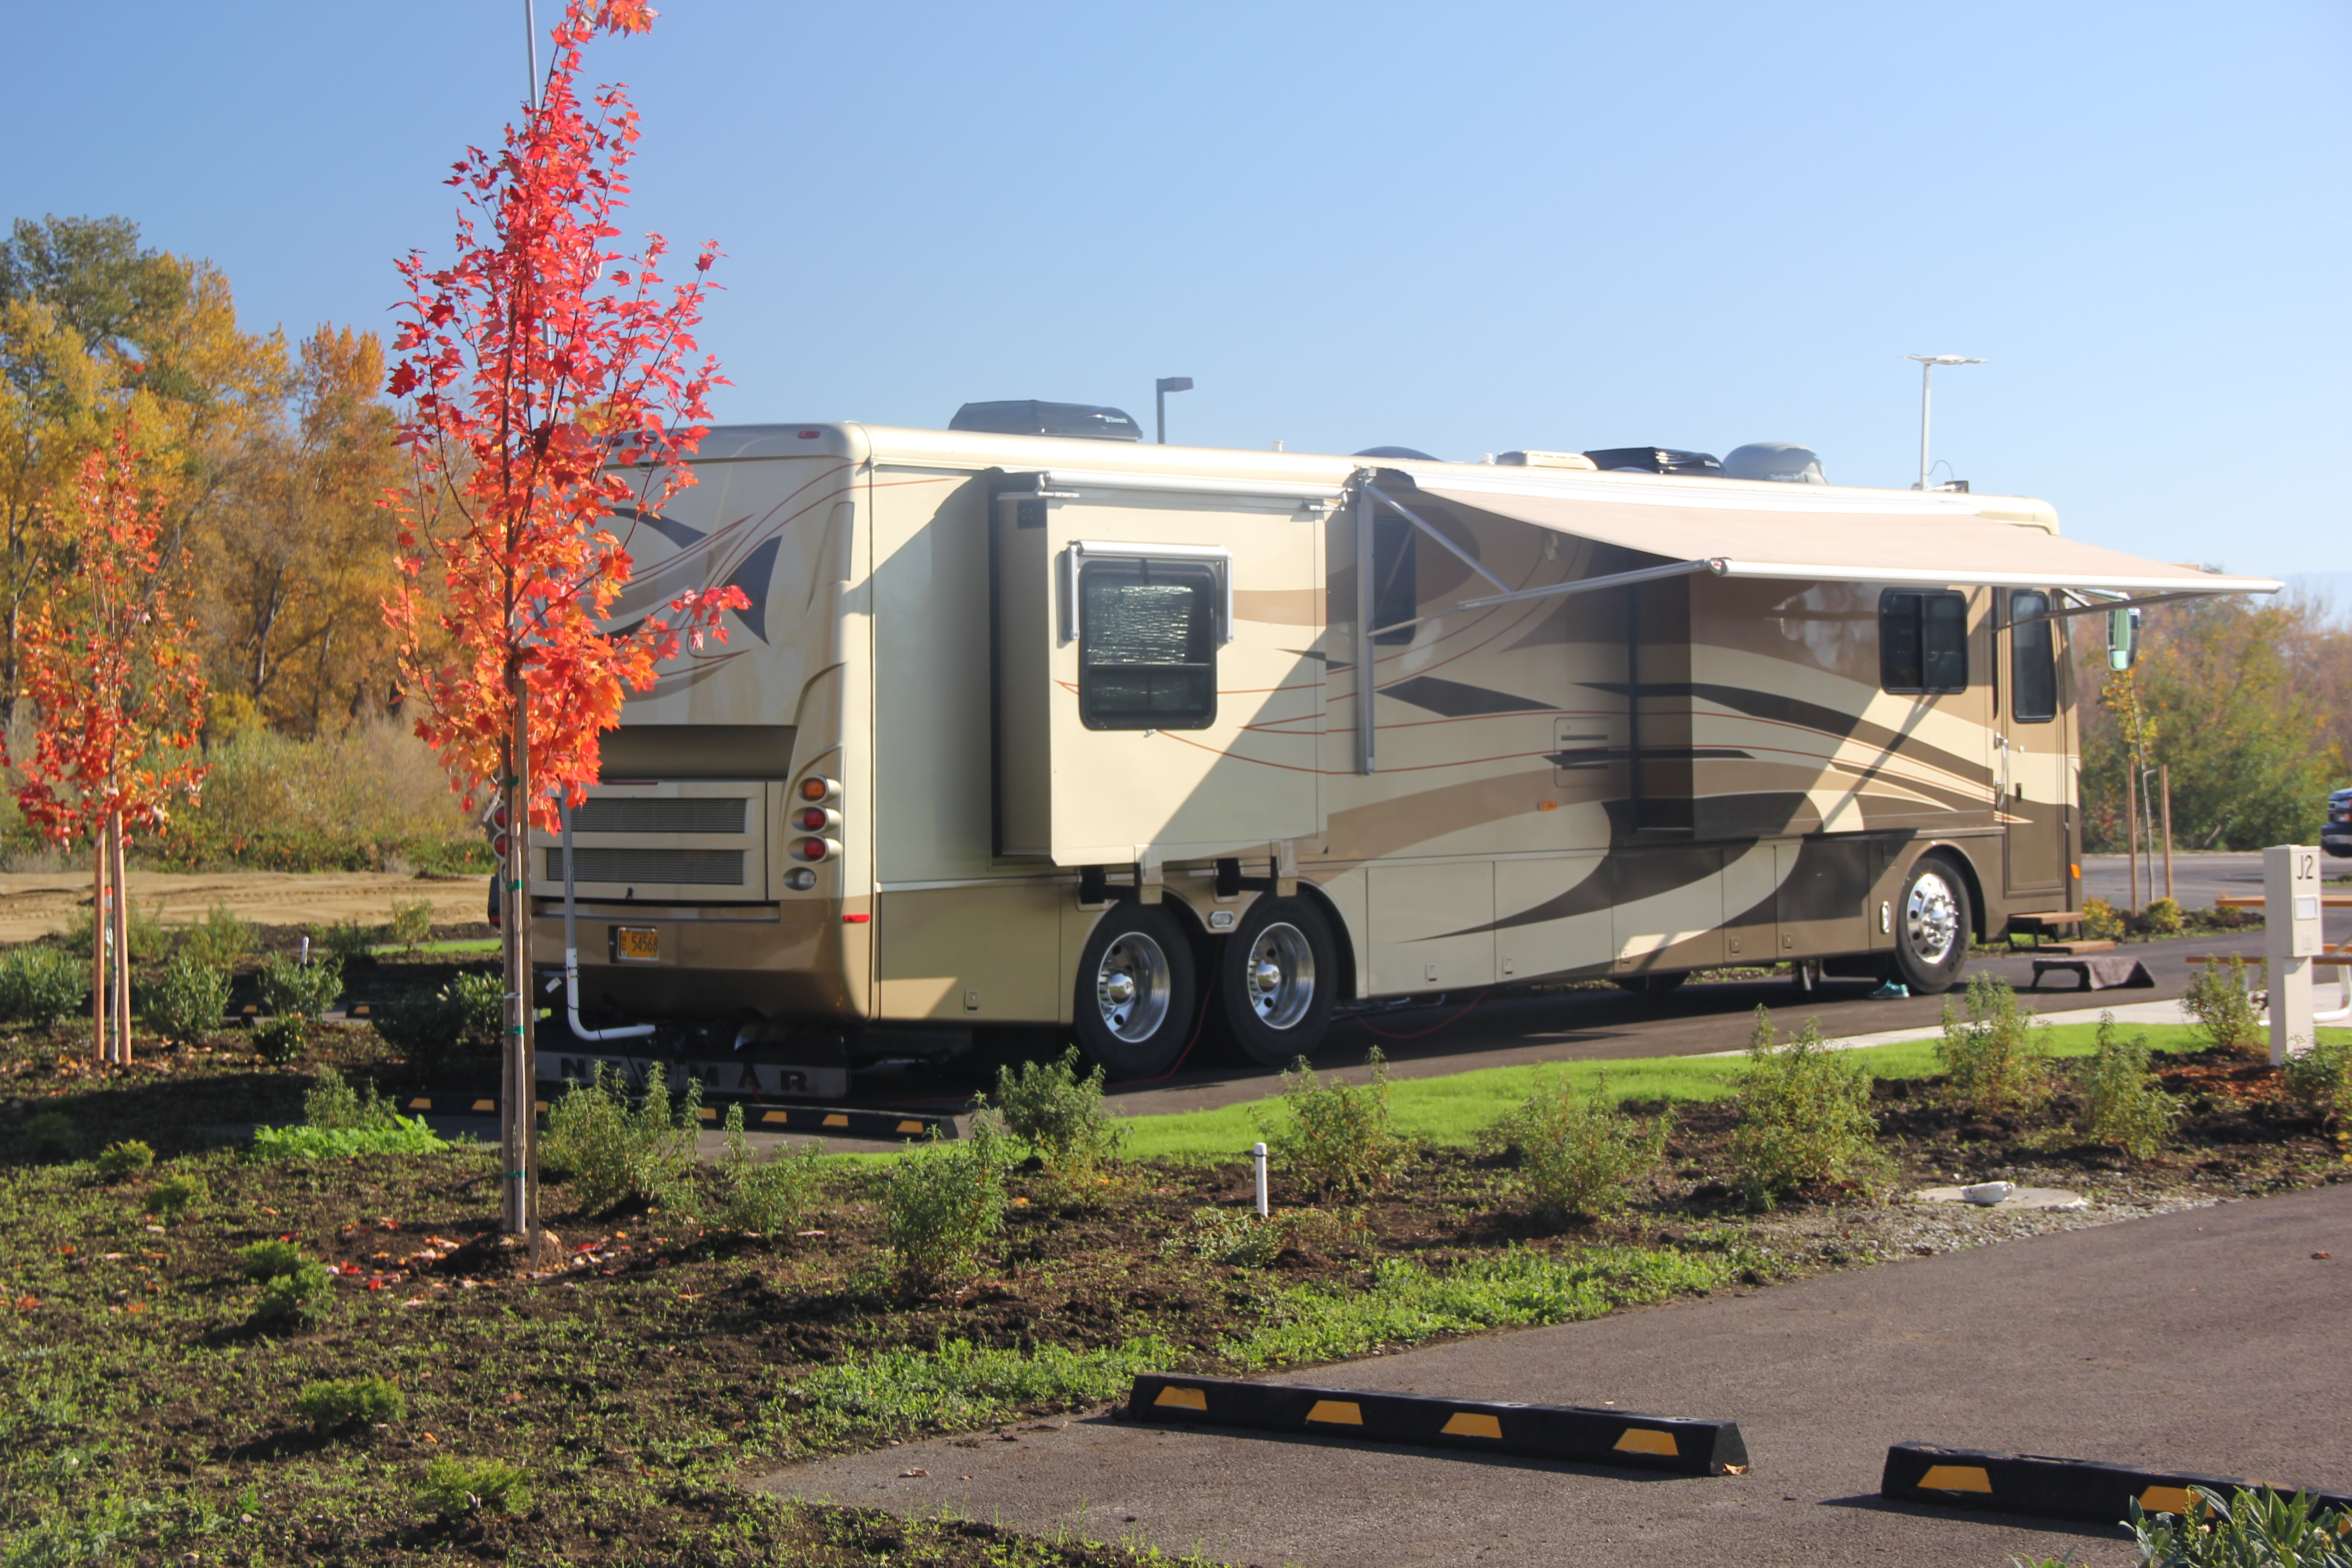 Accommodates Large RV's